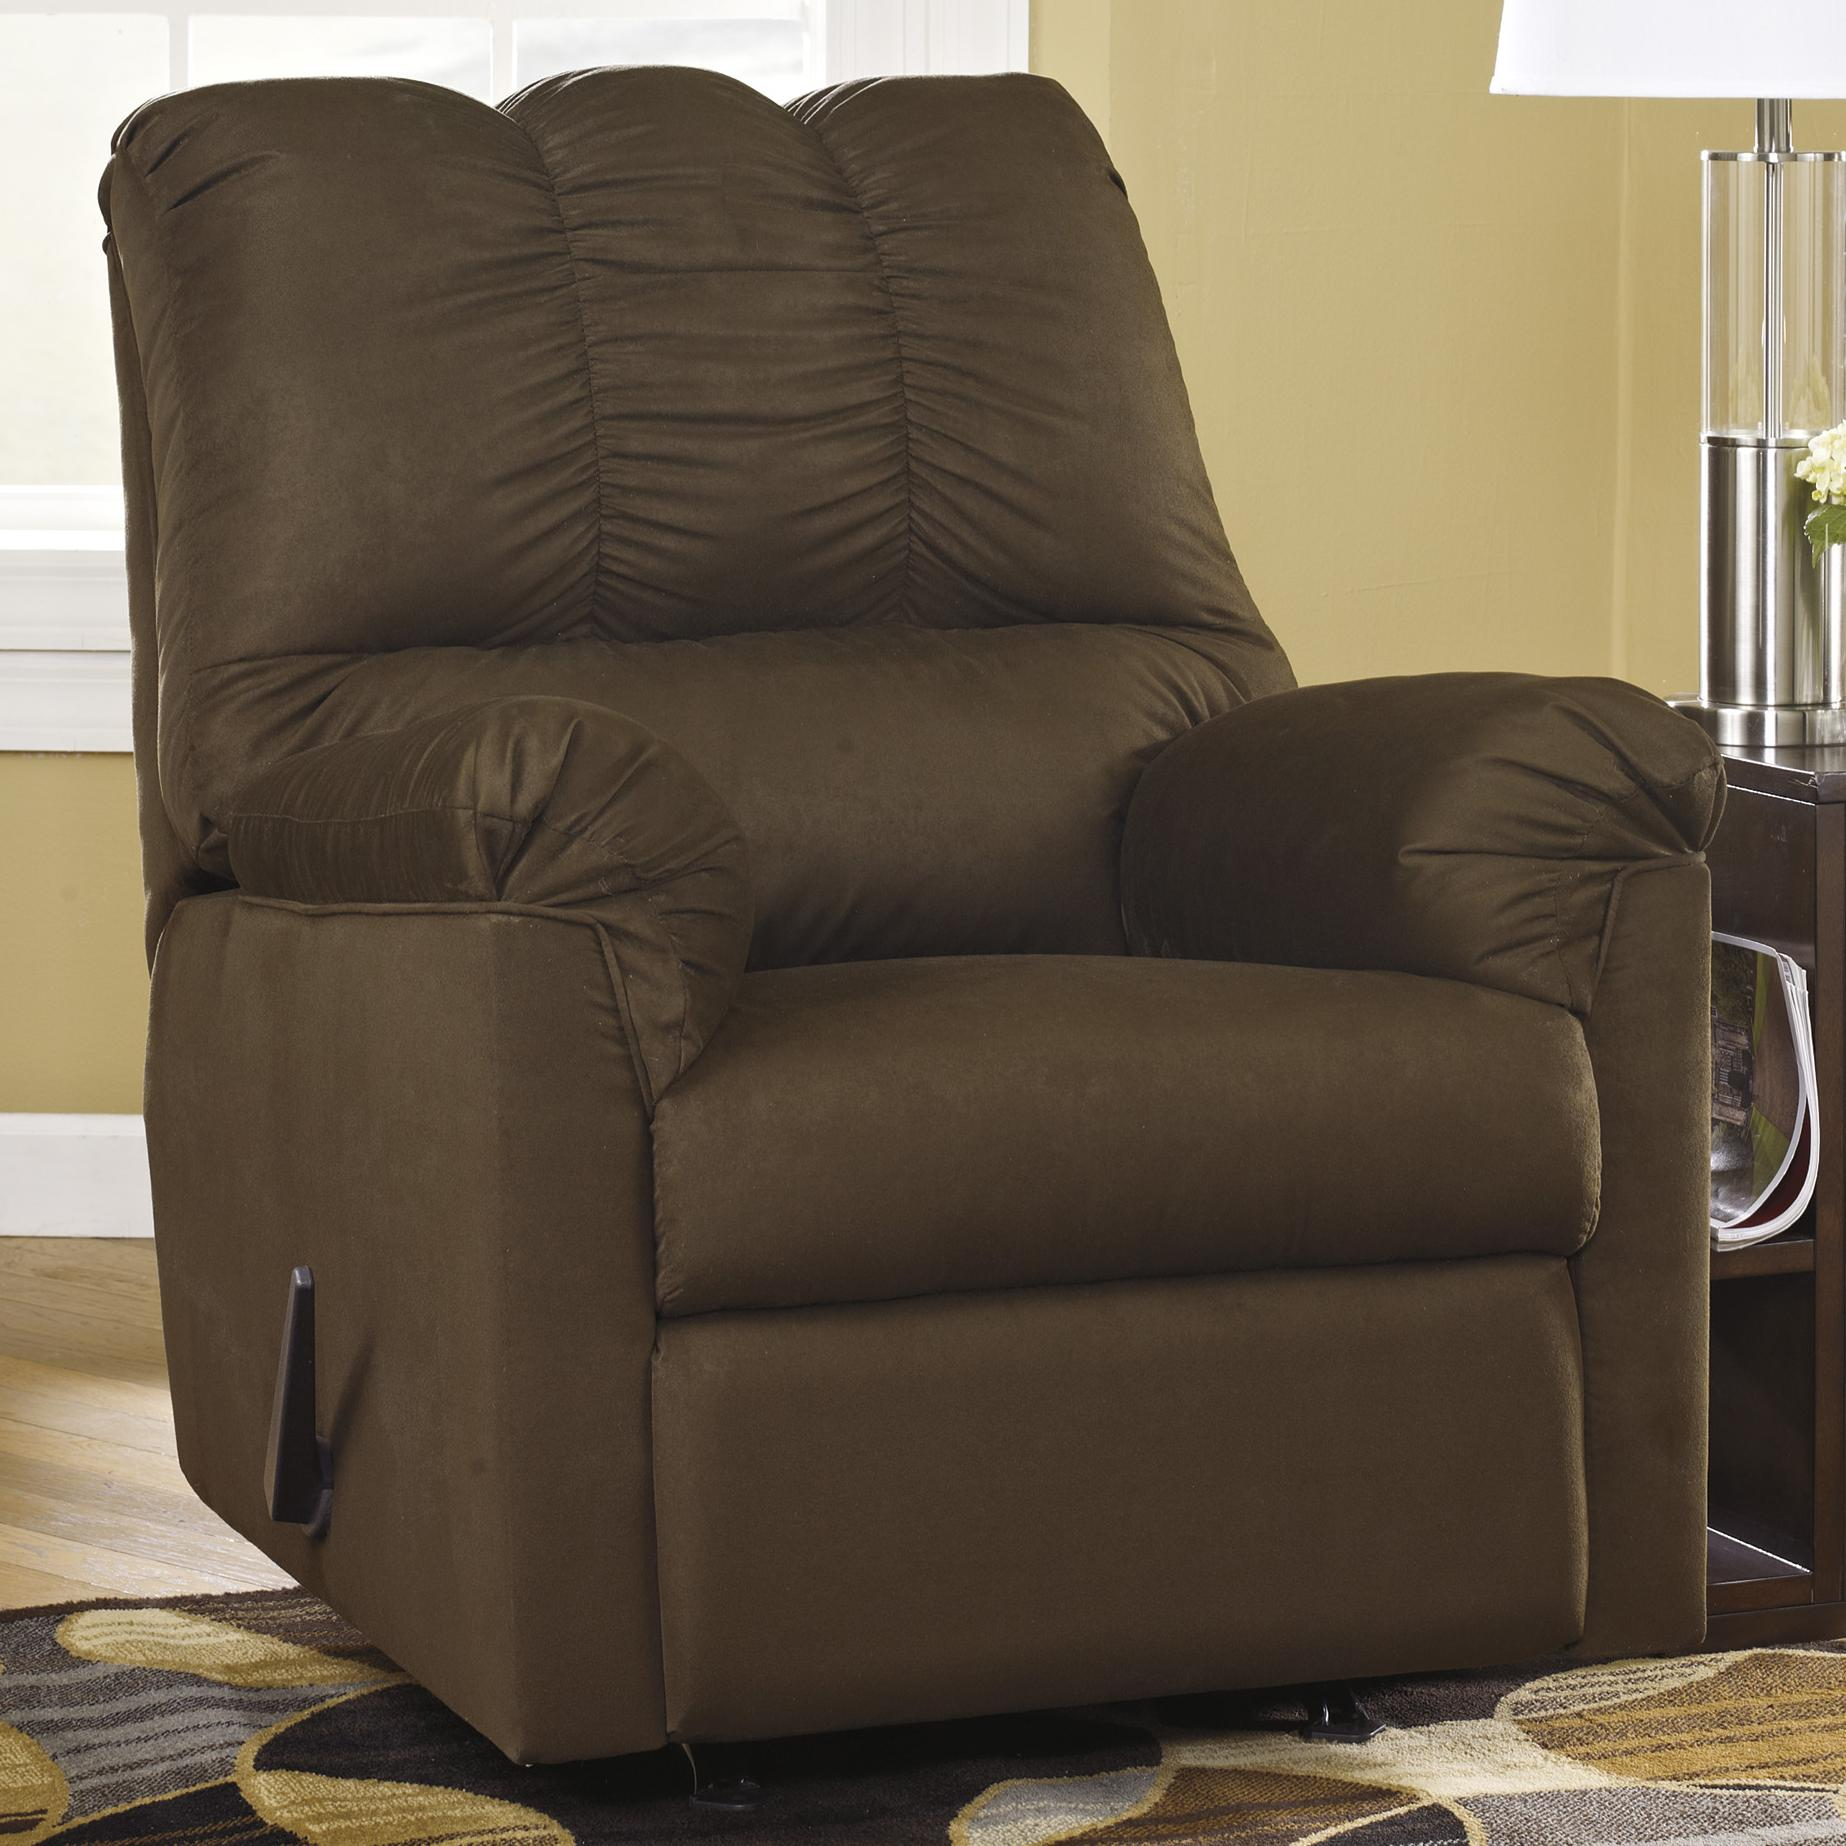 Ashley Furniture Recliners: Ashley Signature Design Darcy - Cafe 7500425 Rocker Recliner